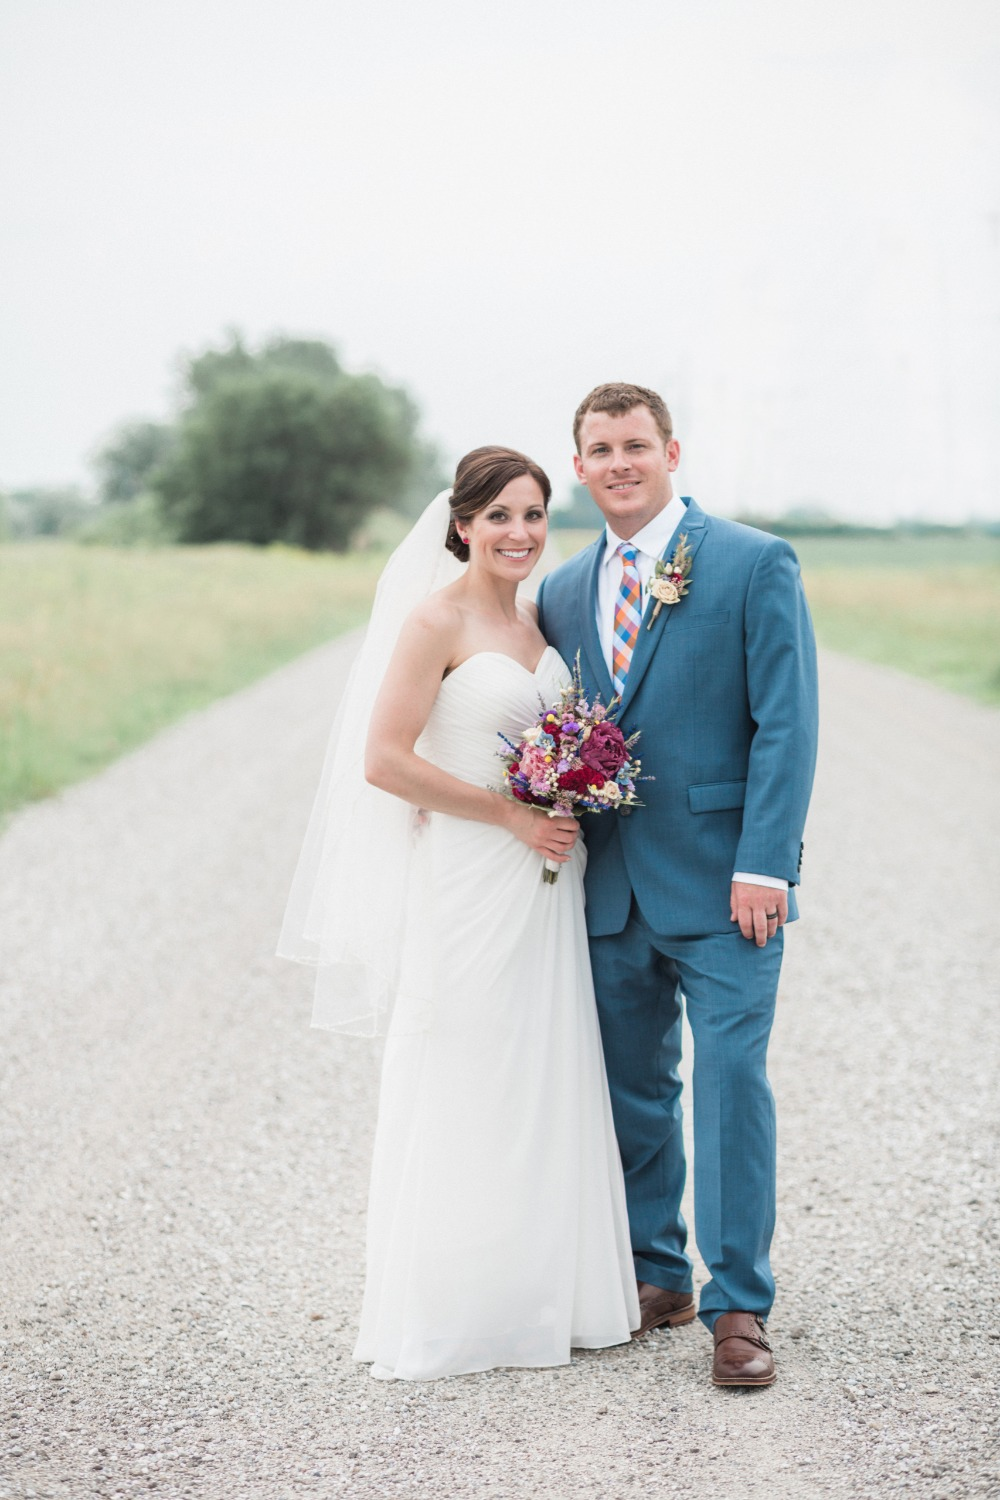 simple and sweet wedding photography